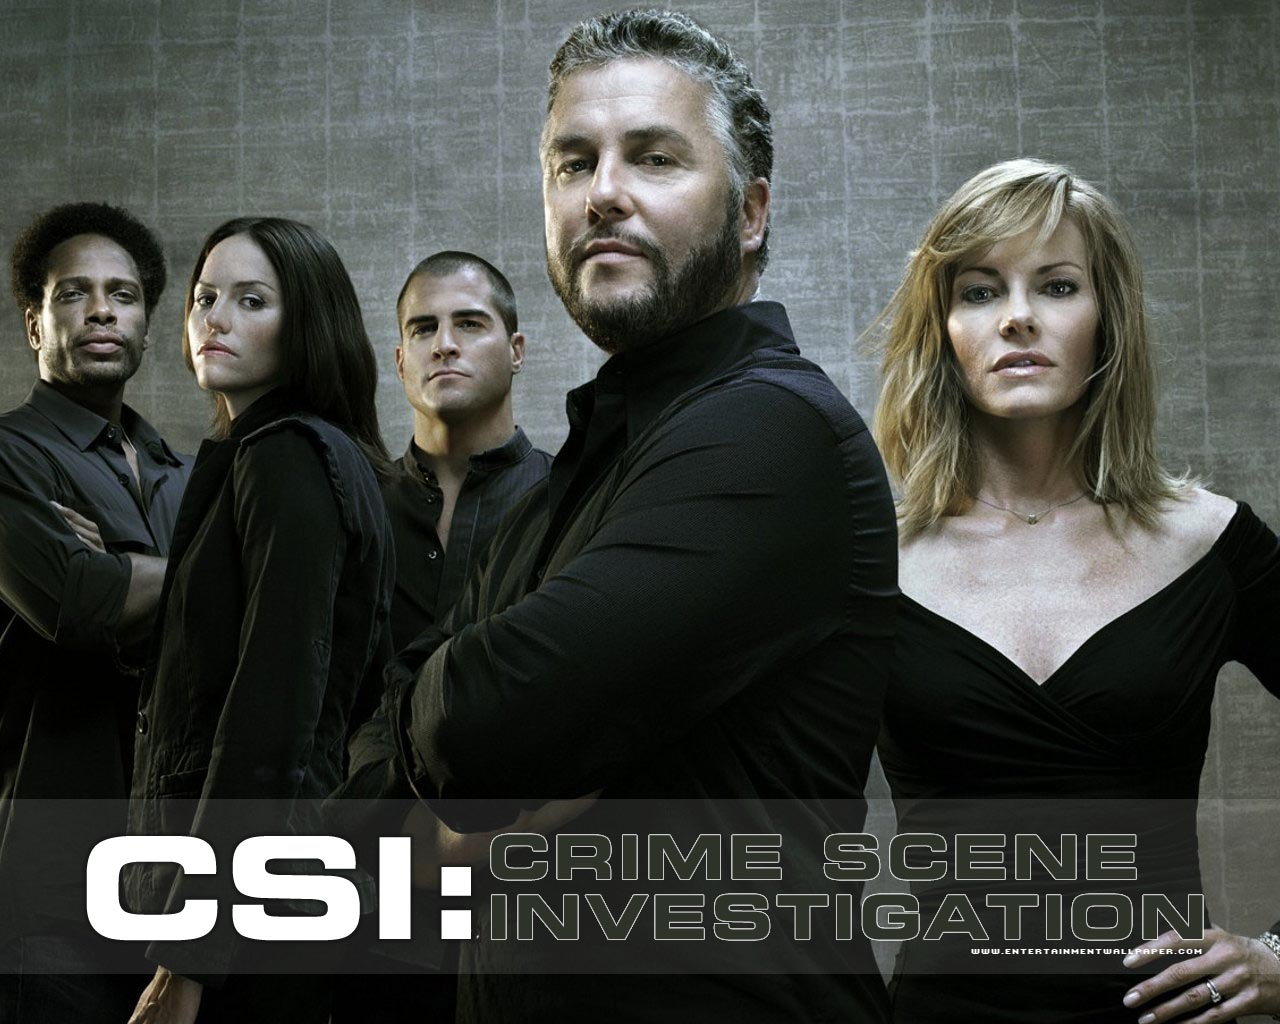 http://globalseriestv.wdfiles.com/local--files/csi-crime-scene-investigation/csi-las-vegas.jpg